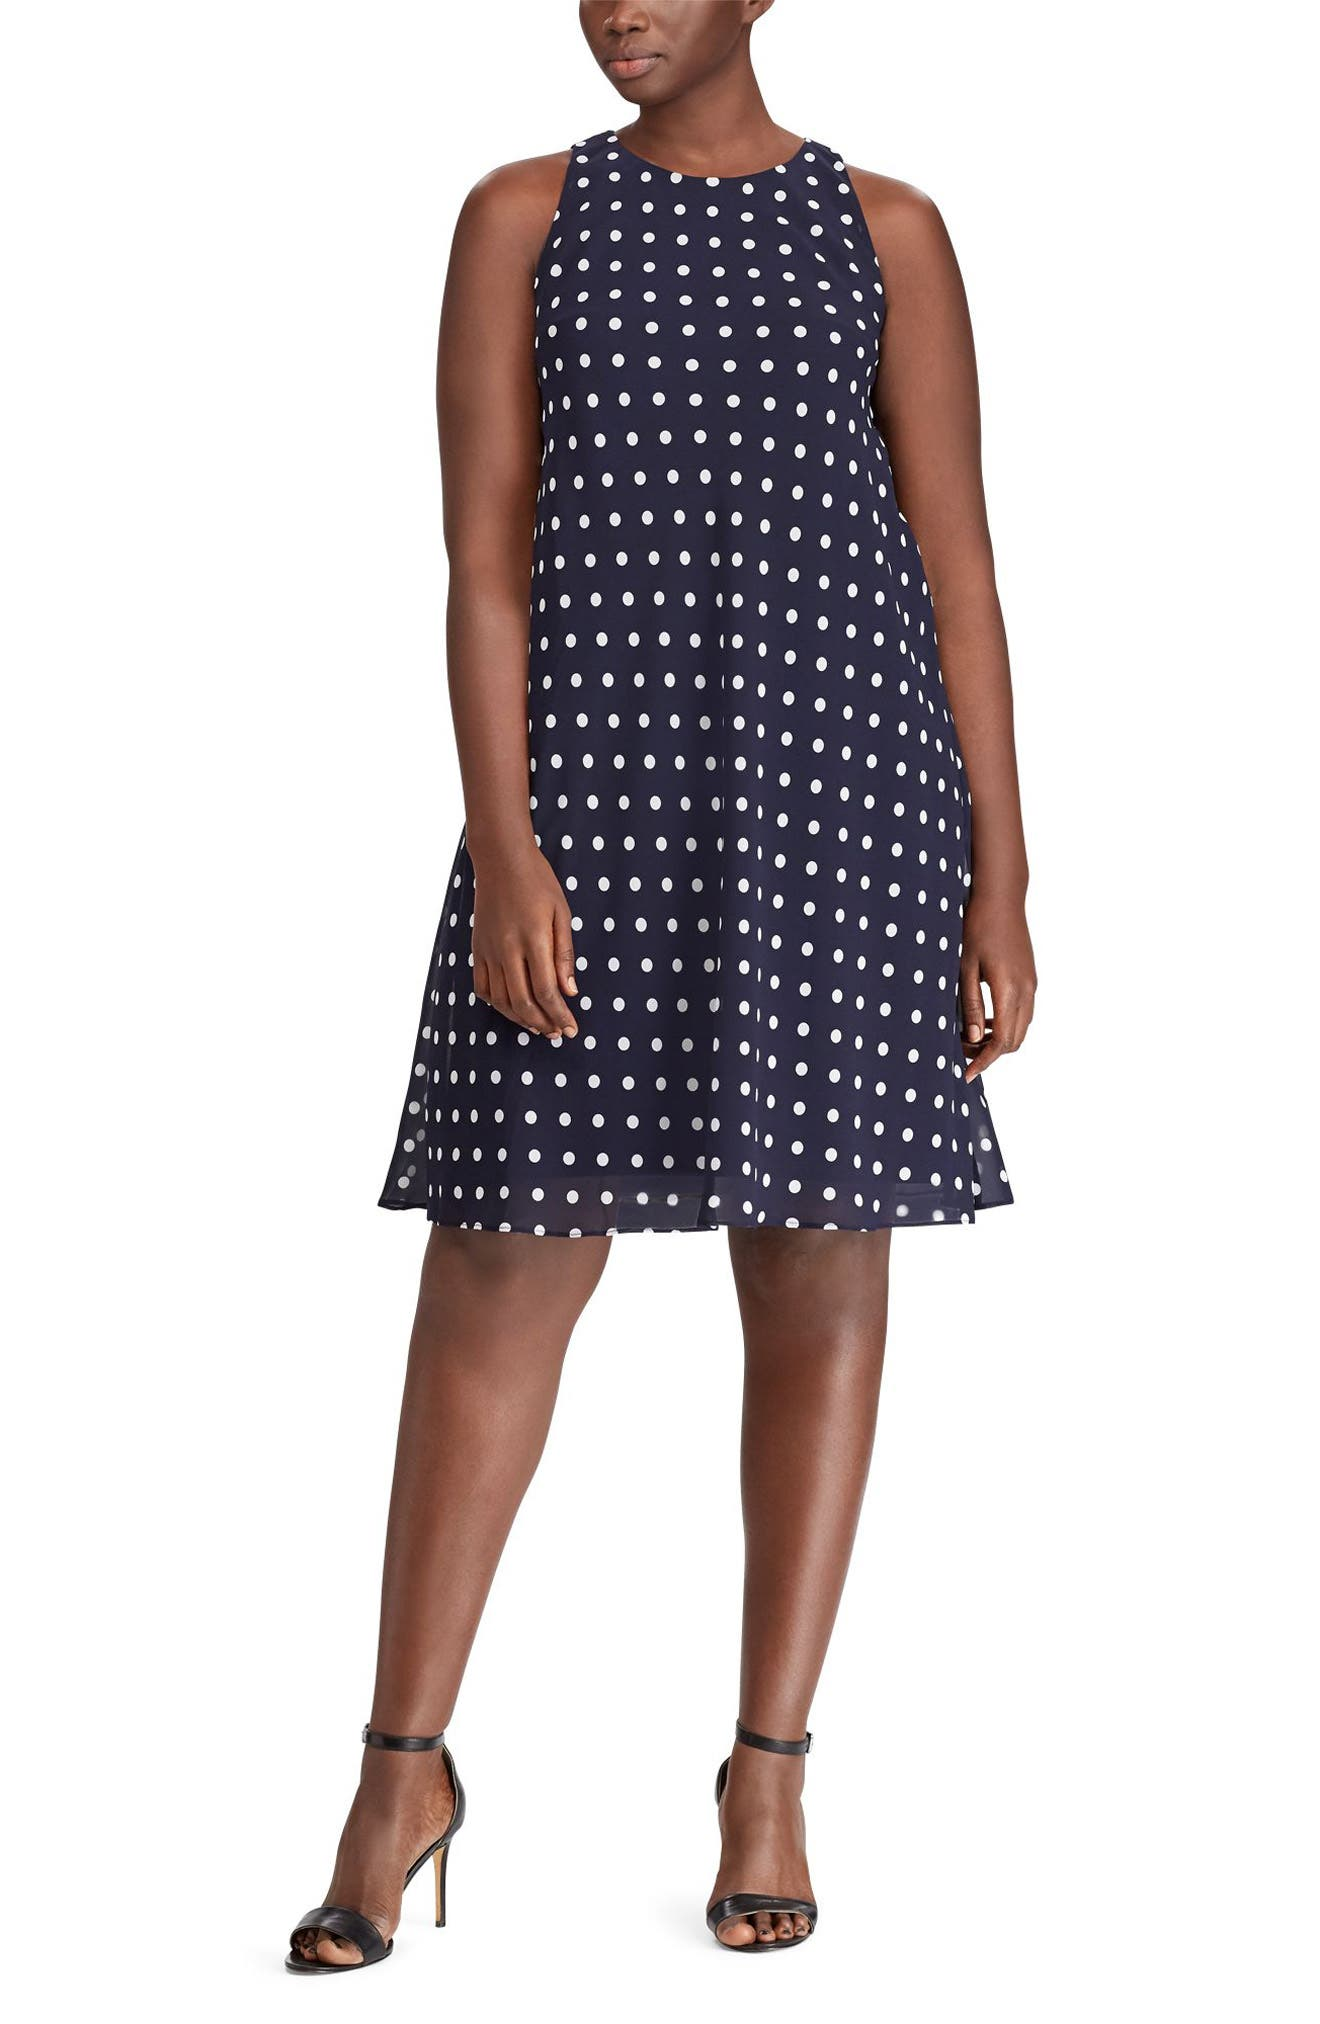 Lauren Ralph Lauren Polka Dot Dress (Plus Size)